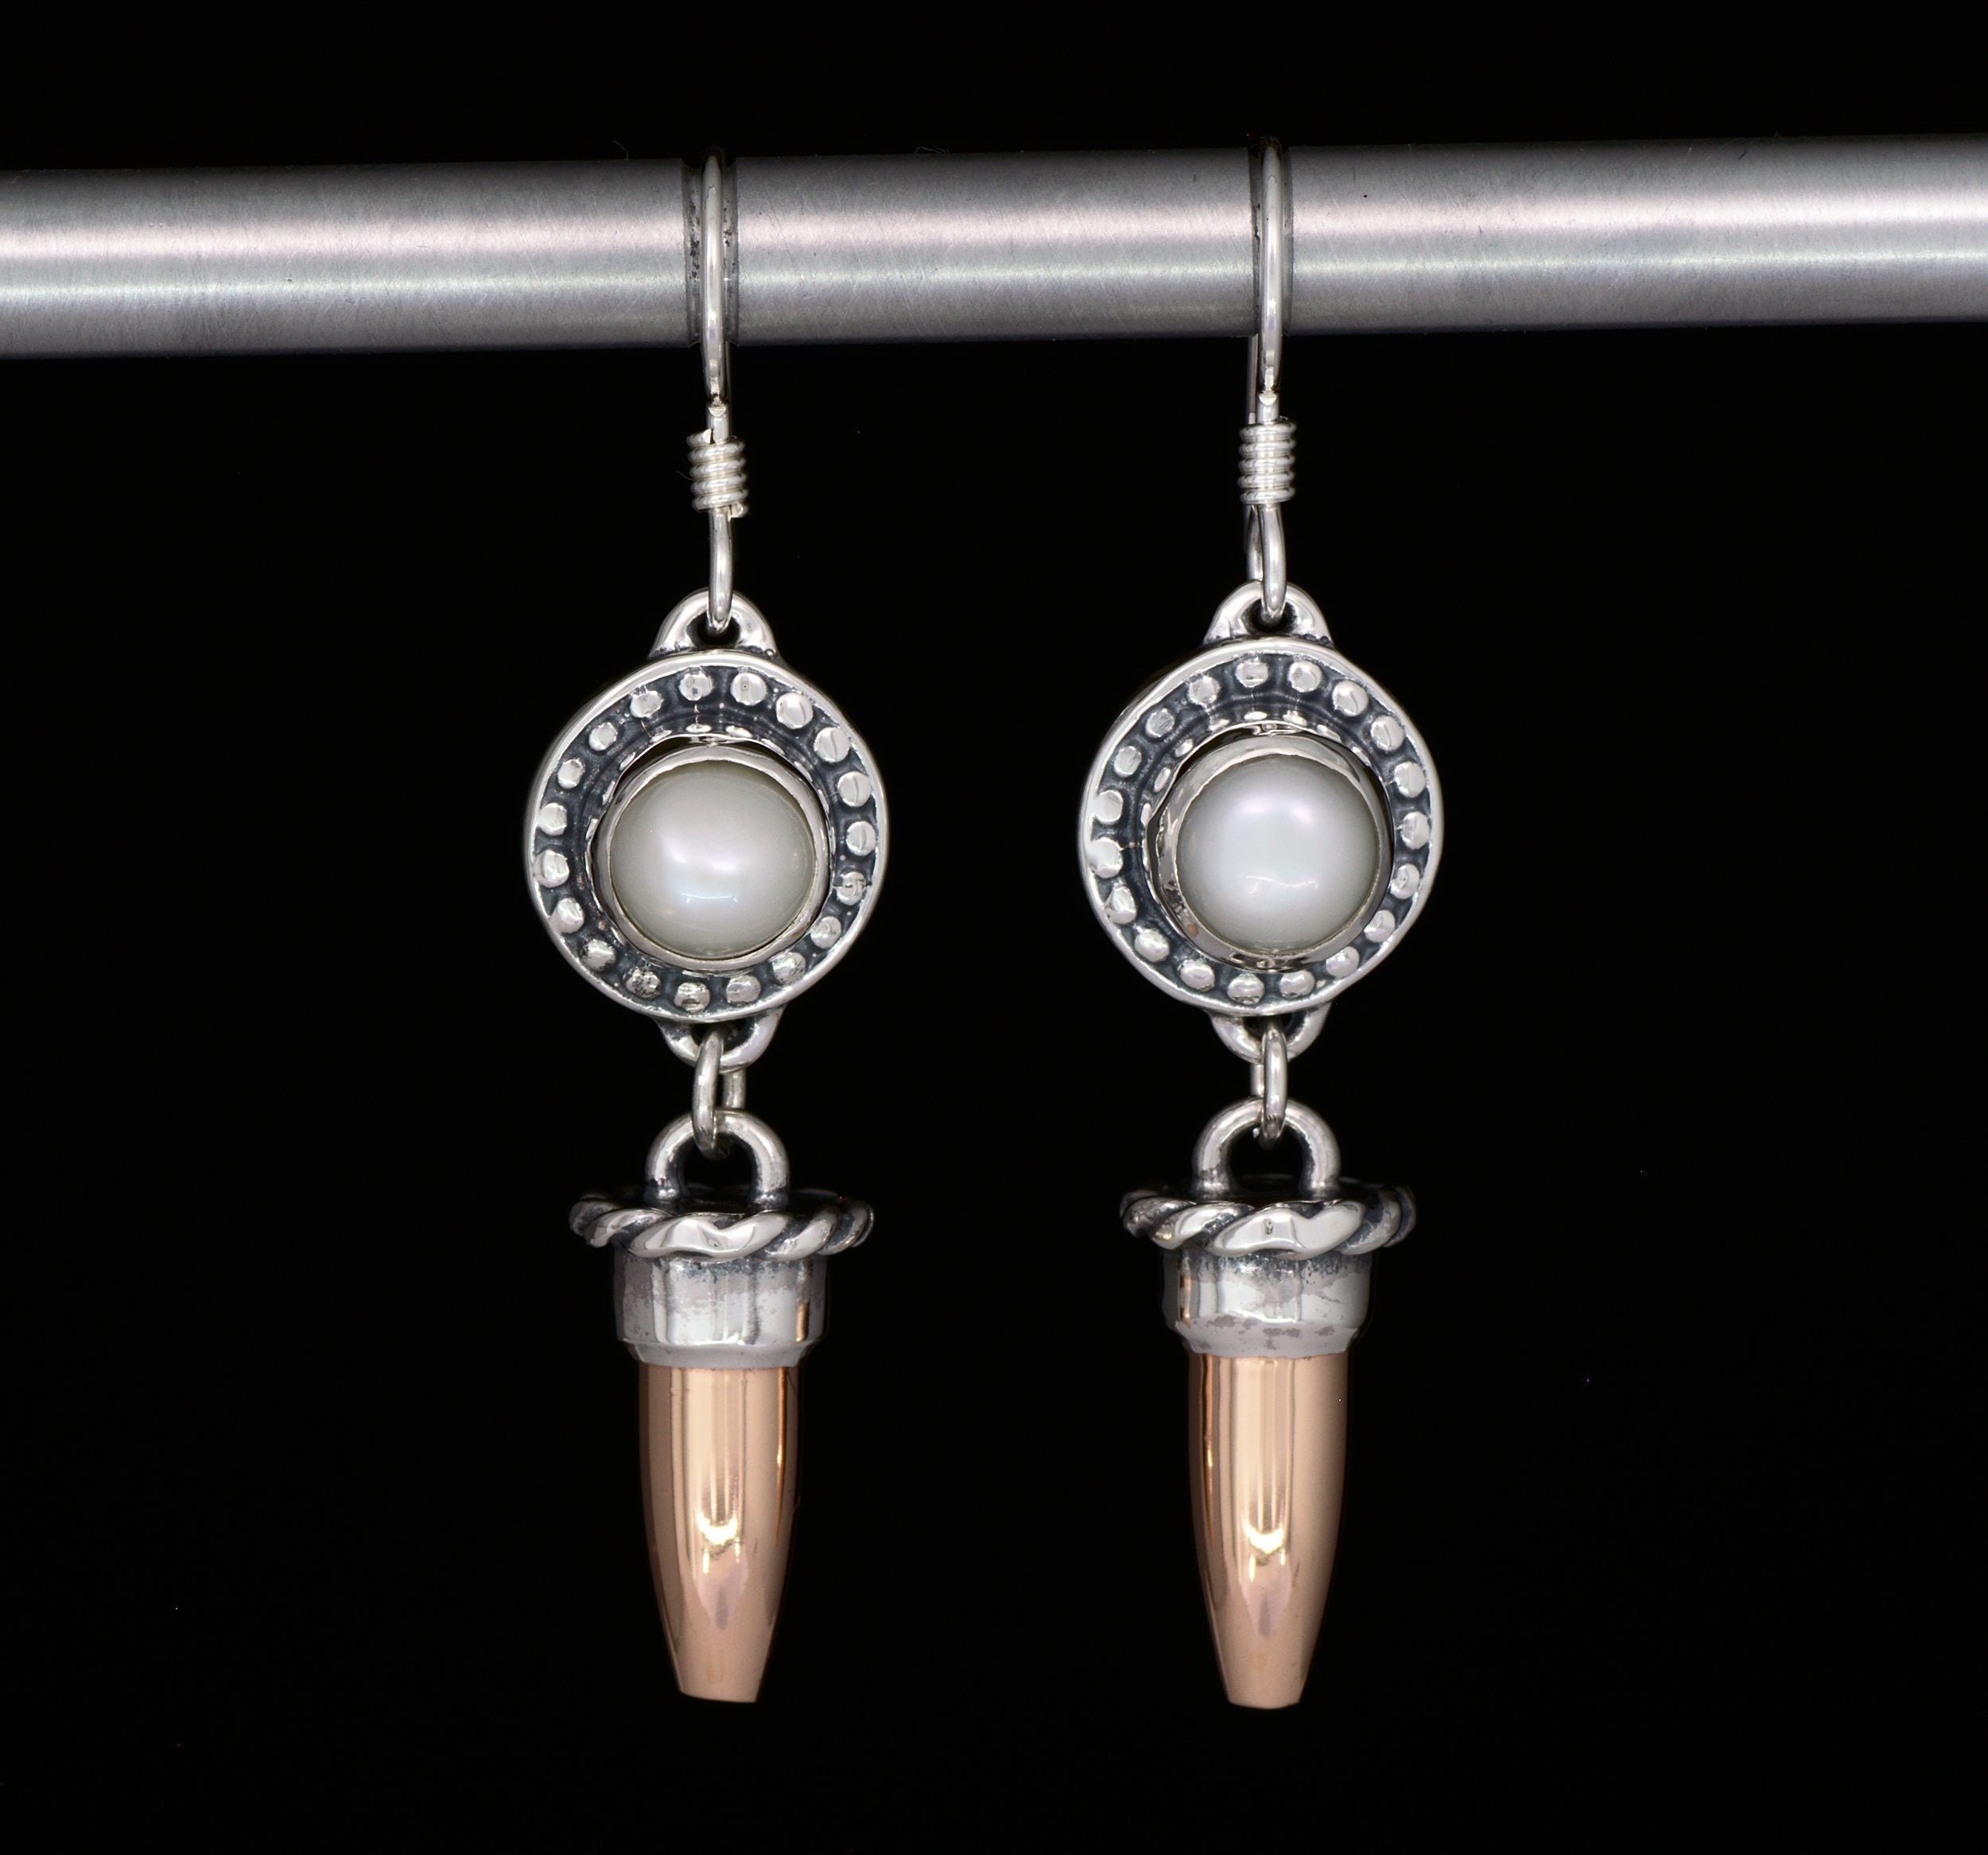 Western Copper Bullet Earrings